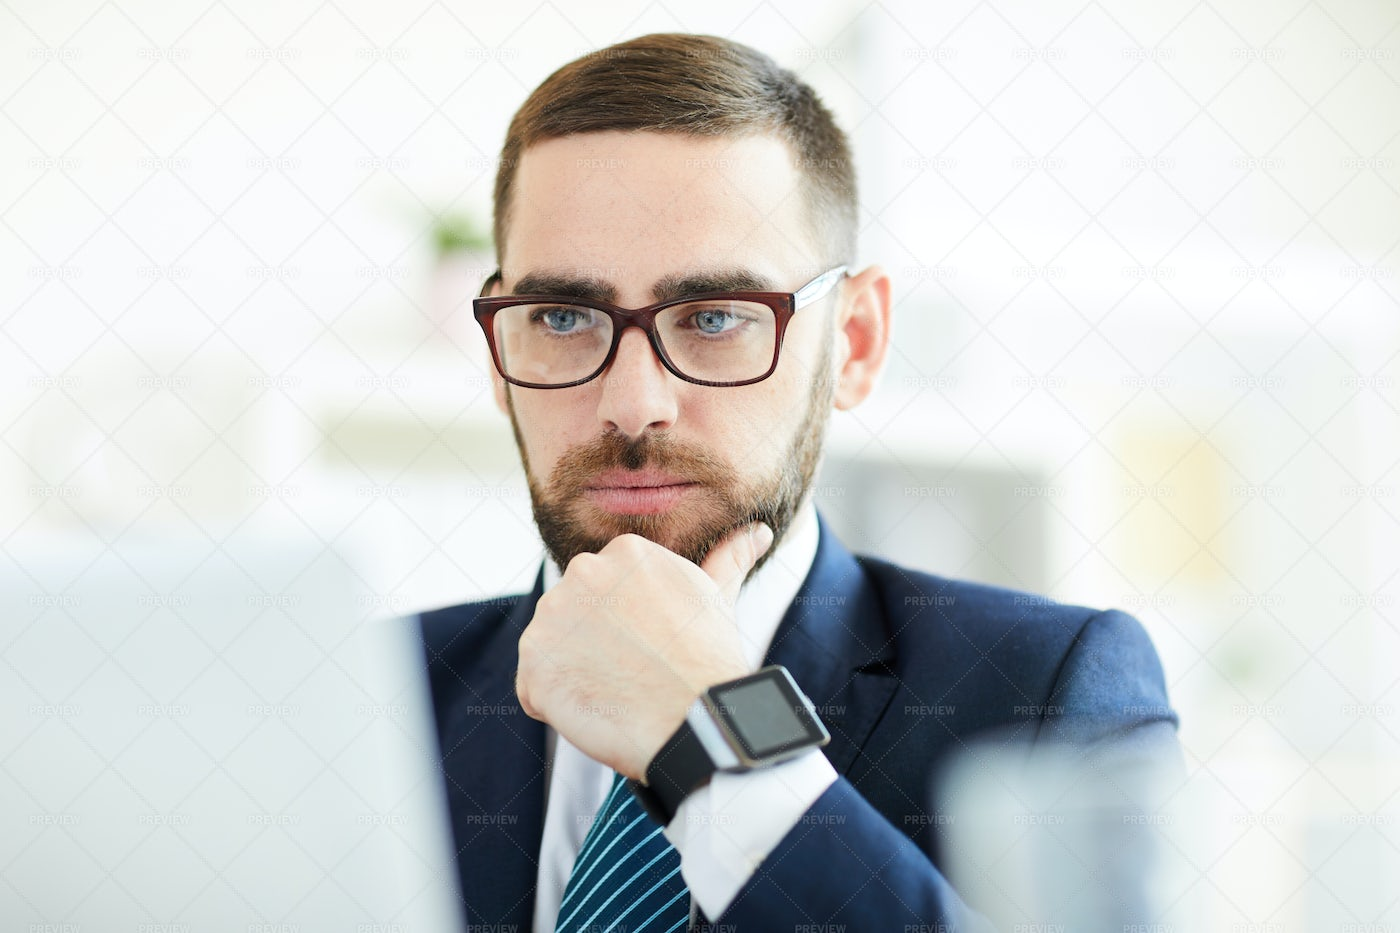 Businessman Analyzing Data: Stock Photos